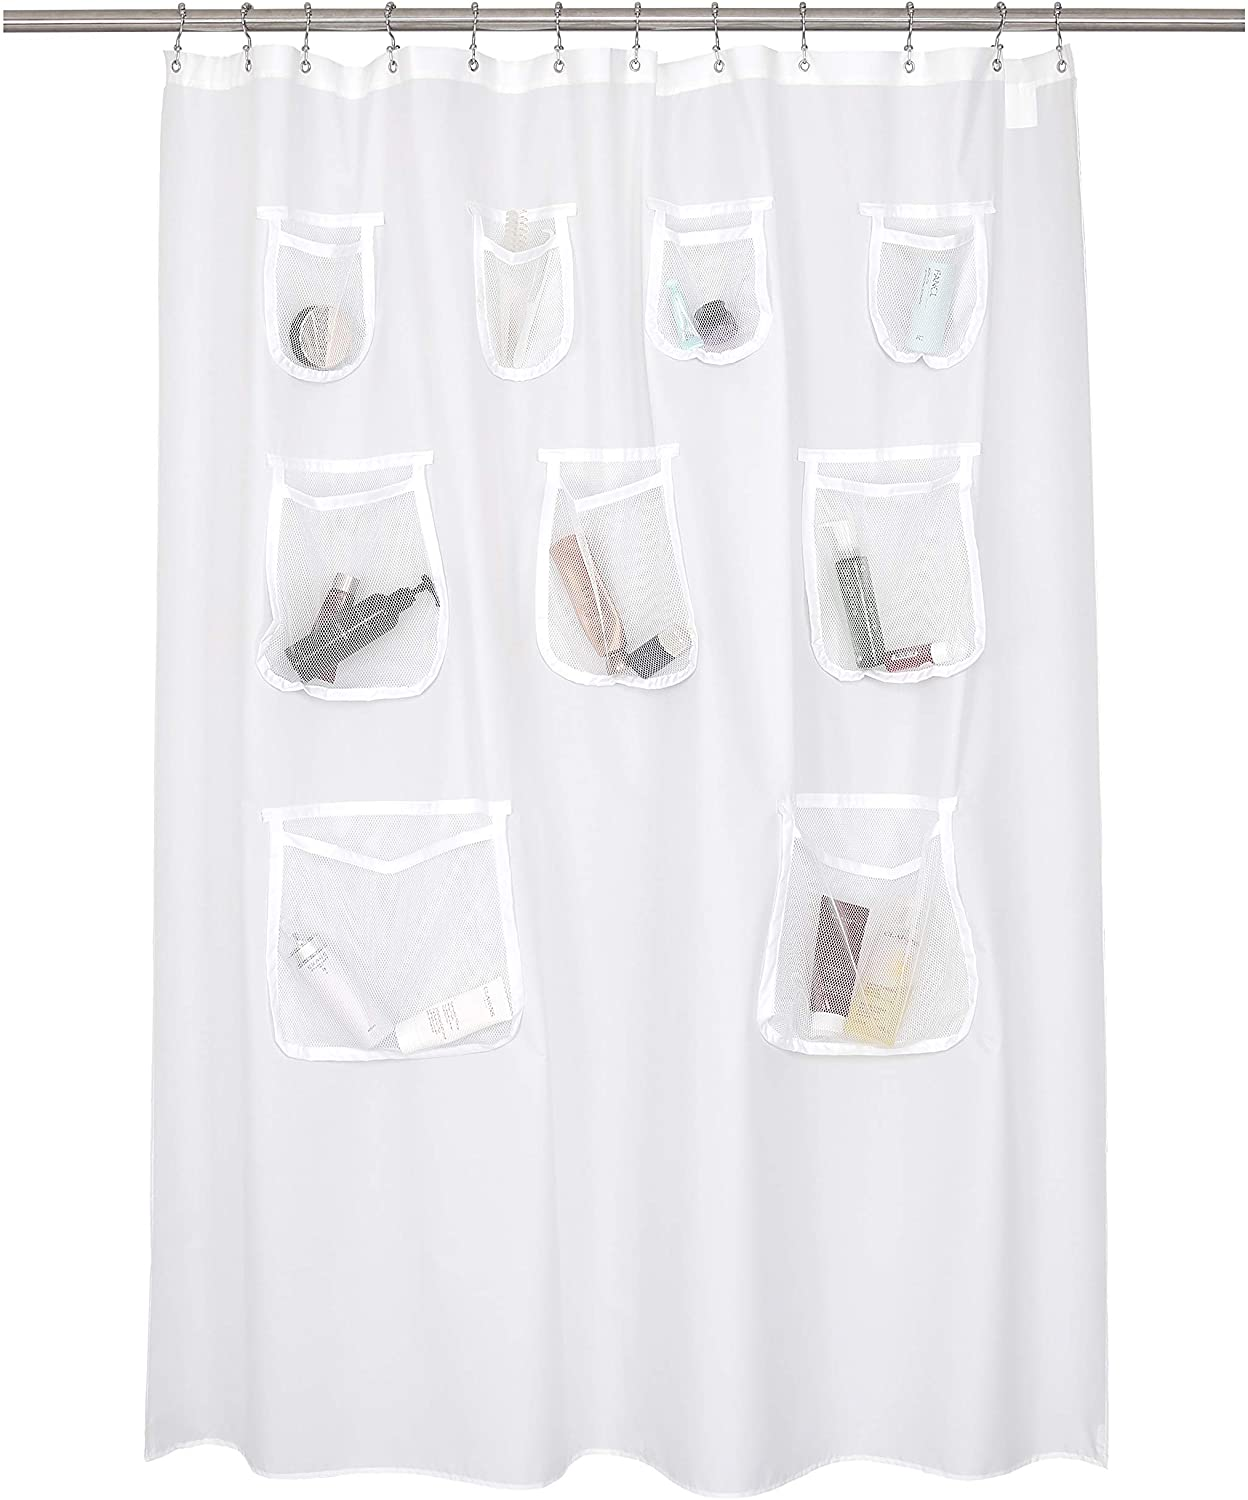 N&Y HOME Waterproof Fabric Shower Curtain or Liner with 9 Mesh Pockets - White, 71x72 Inches